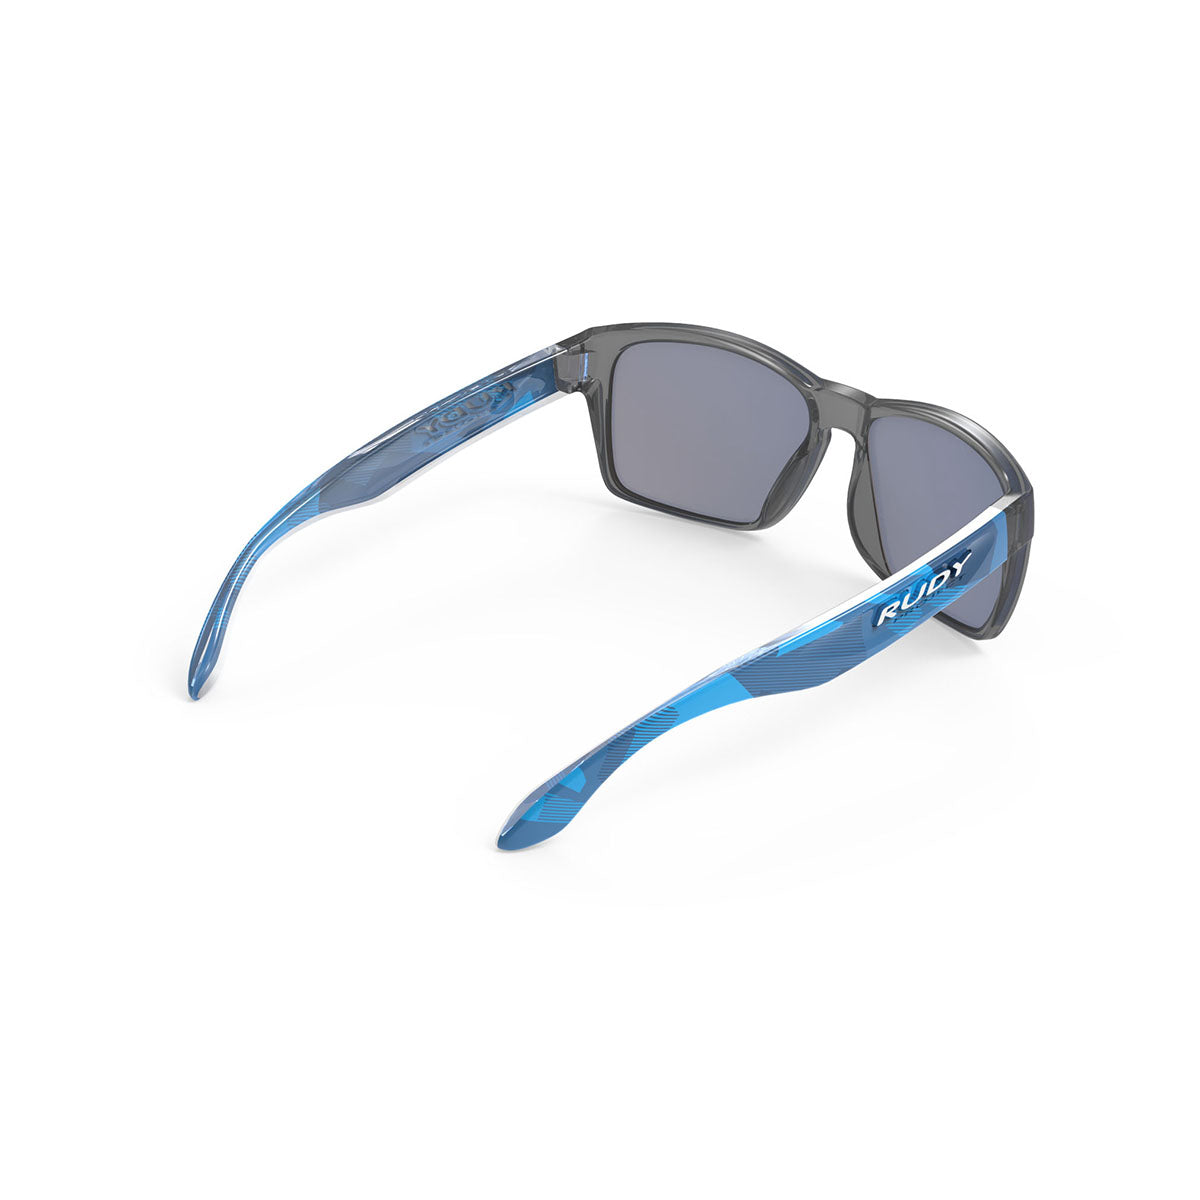 Rudy Project - Spinhawk Slim - frame color: Neo Camo Crystal Blue - lens color: Multilaser Ice - Bumper Color:  - photo angle: Top Back Angle Variant Hover Image